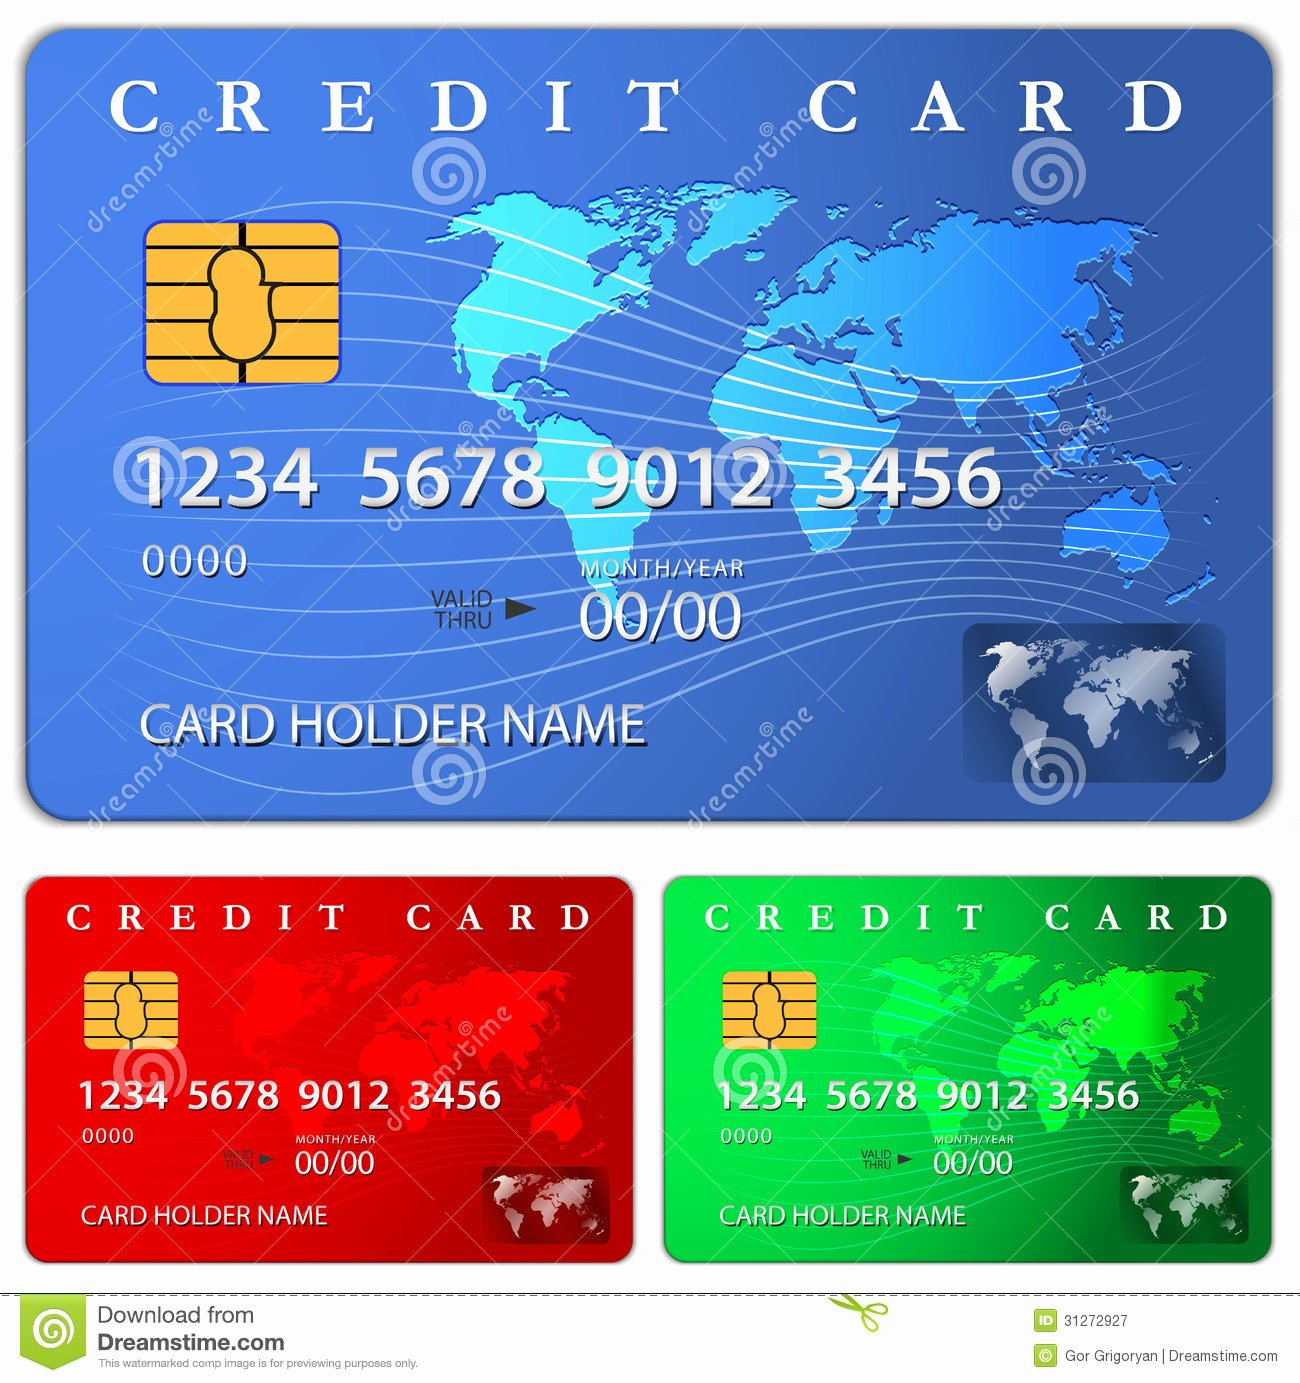 Credit Card Design Template Awesome Credit Debit Card Design Template Stock Vector Image